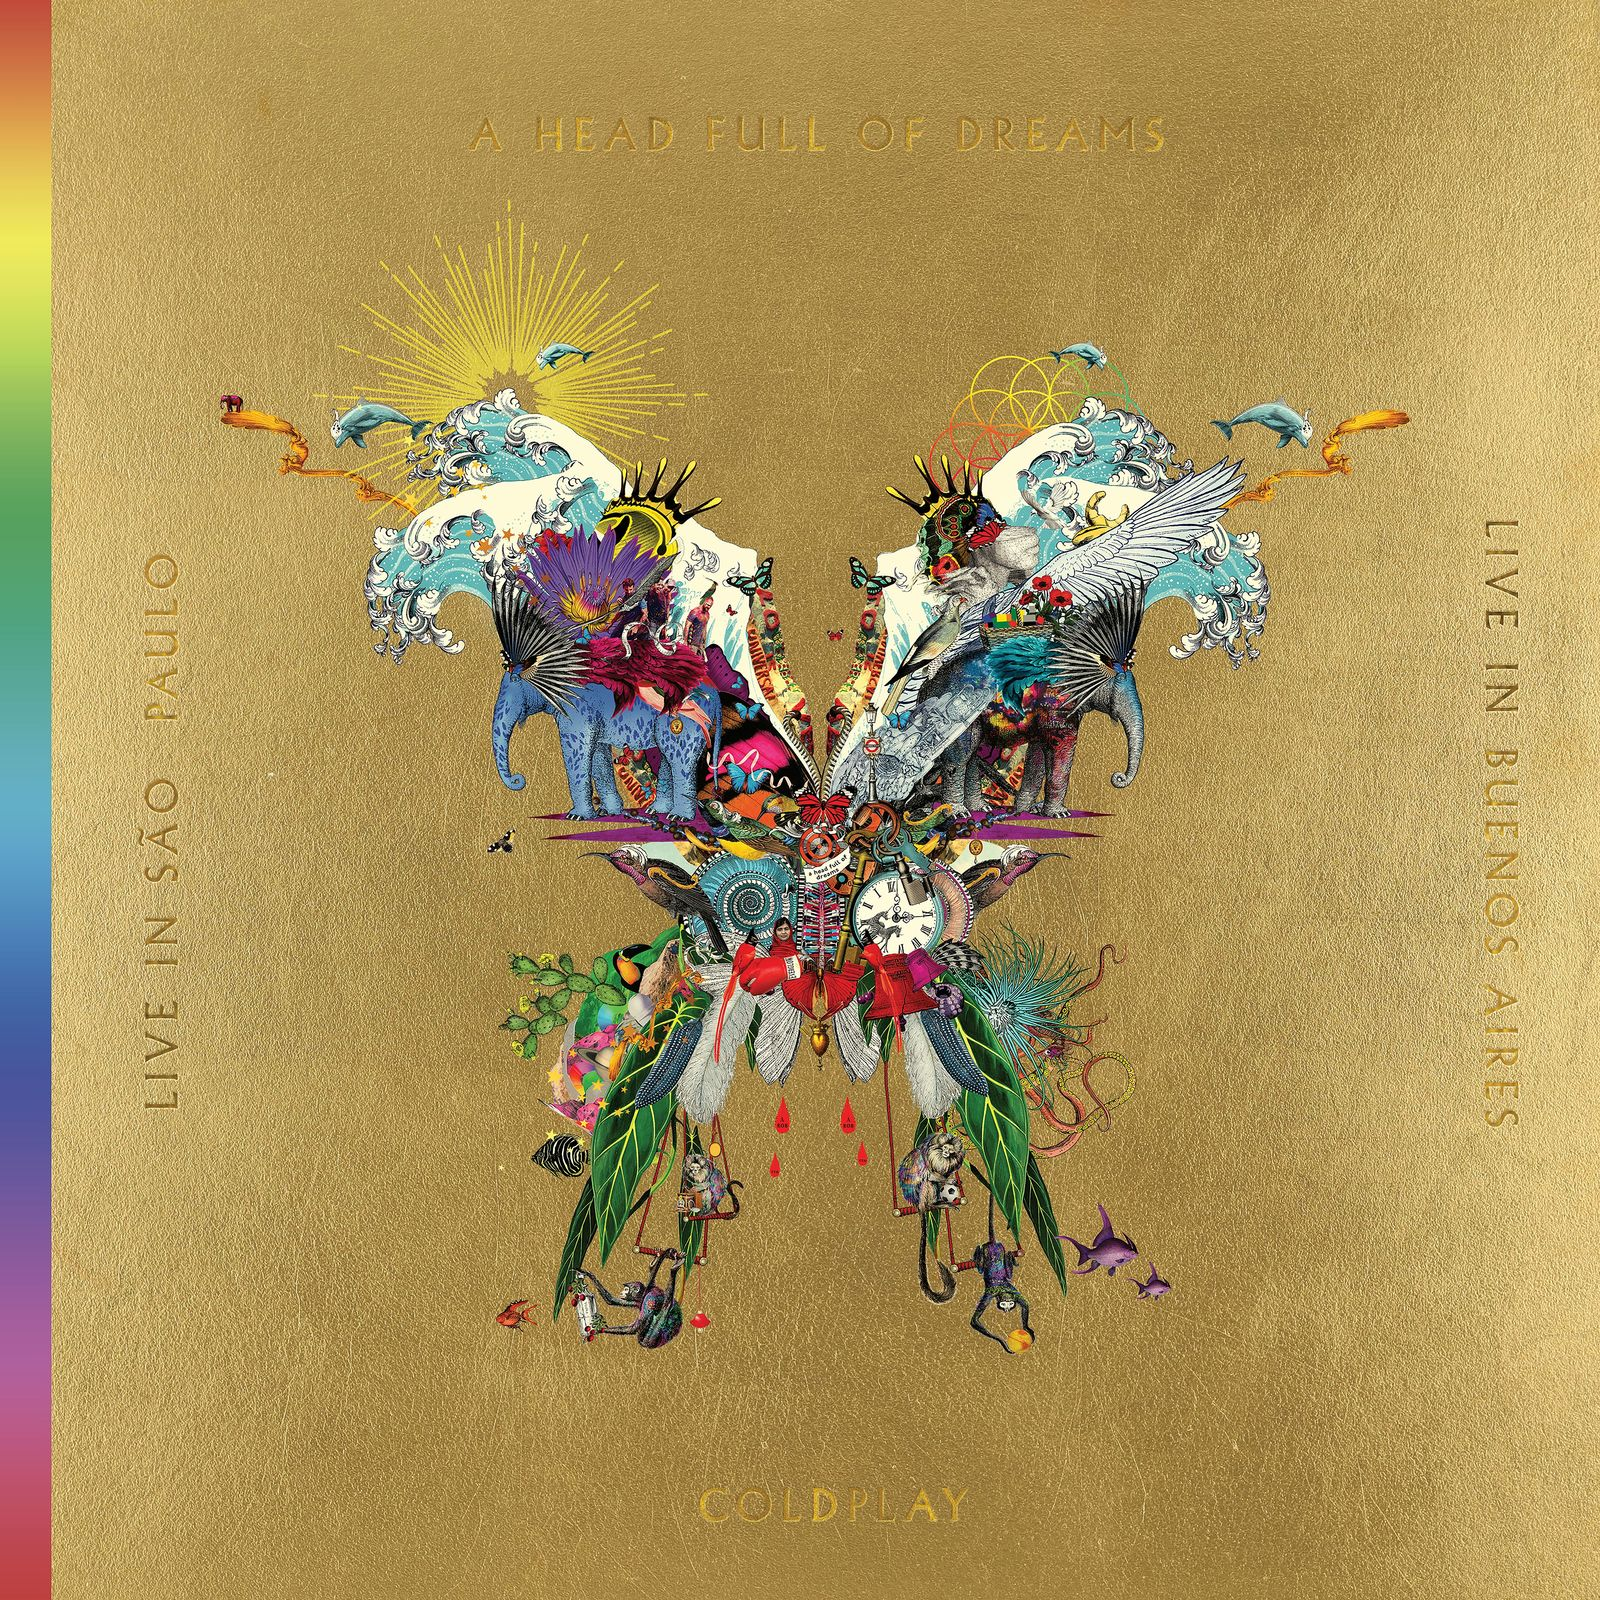 Coldplay - Live In Buenos Aires / Live In Sao Paulo / A Head Full Of Dreams by Coldplay image